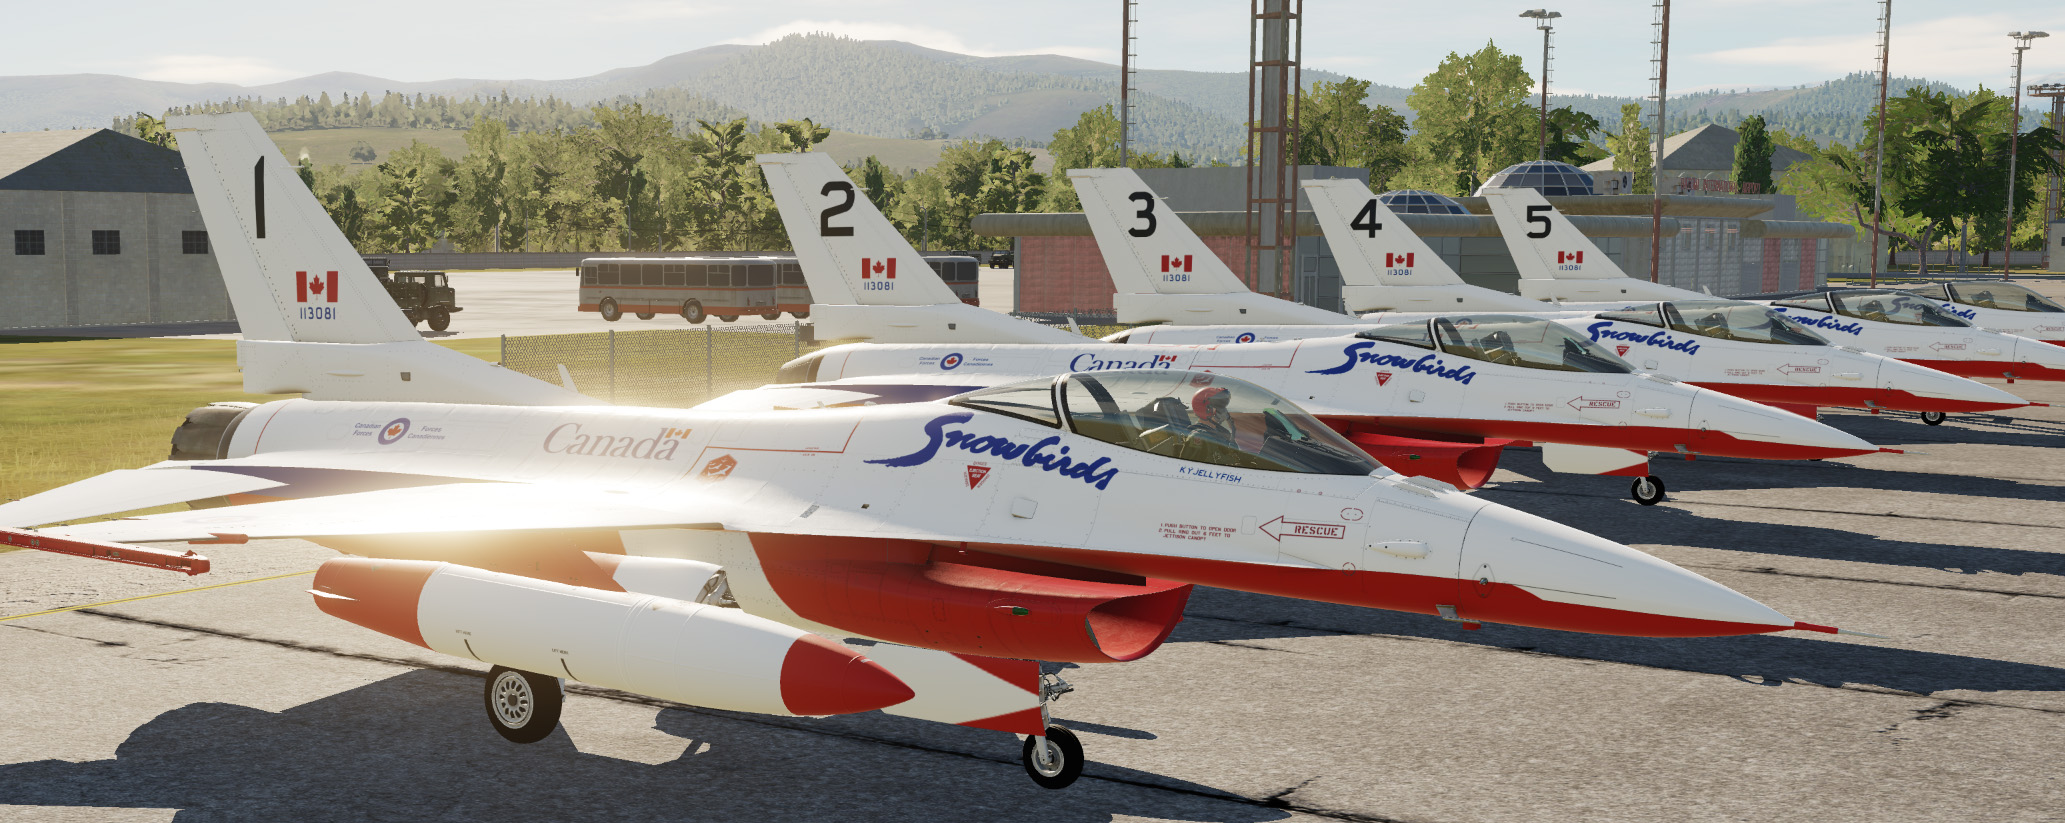 Snowbirds F-16 (FICTIONAL)